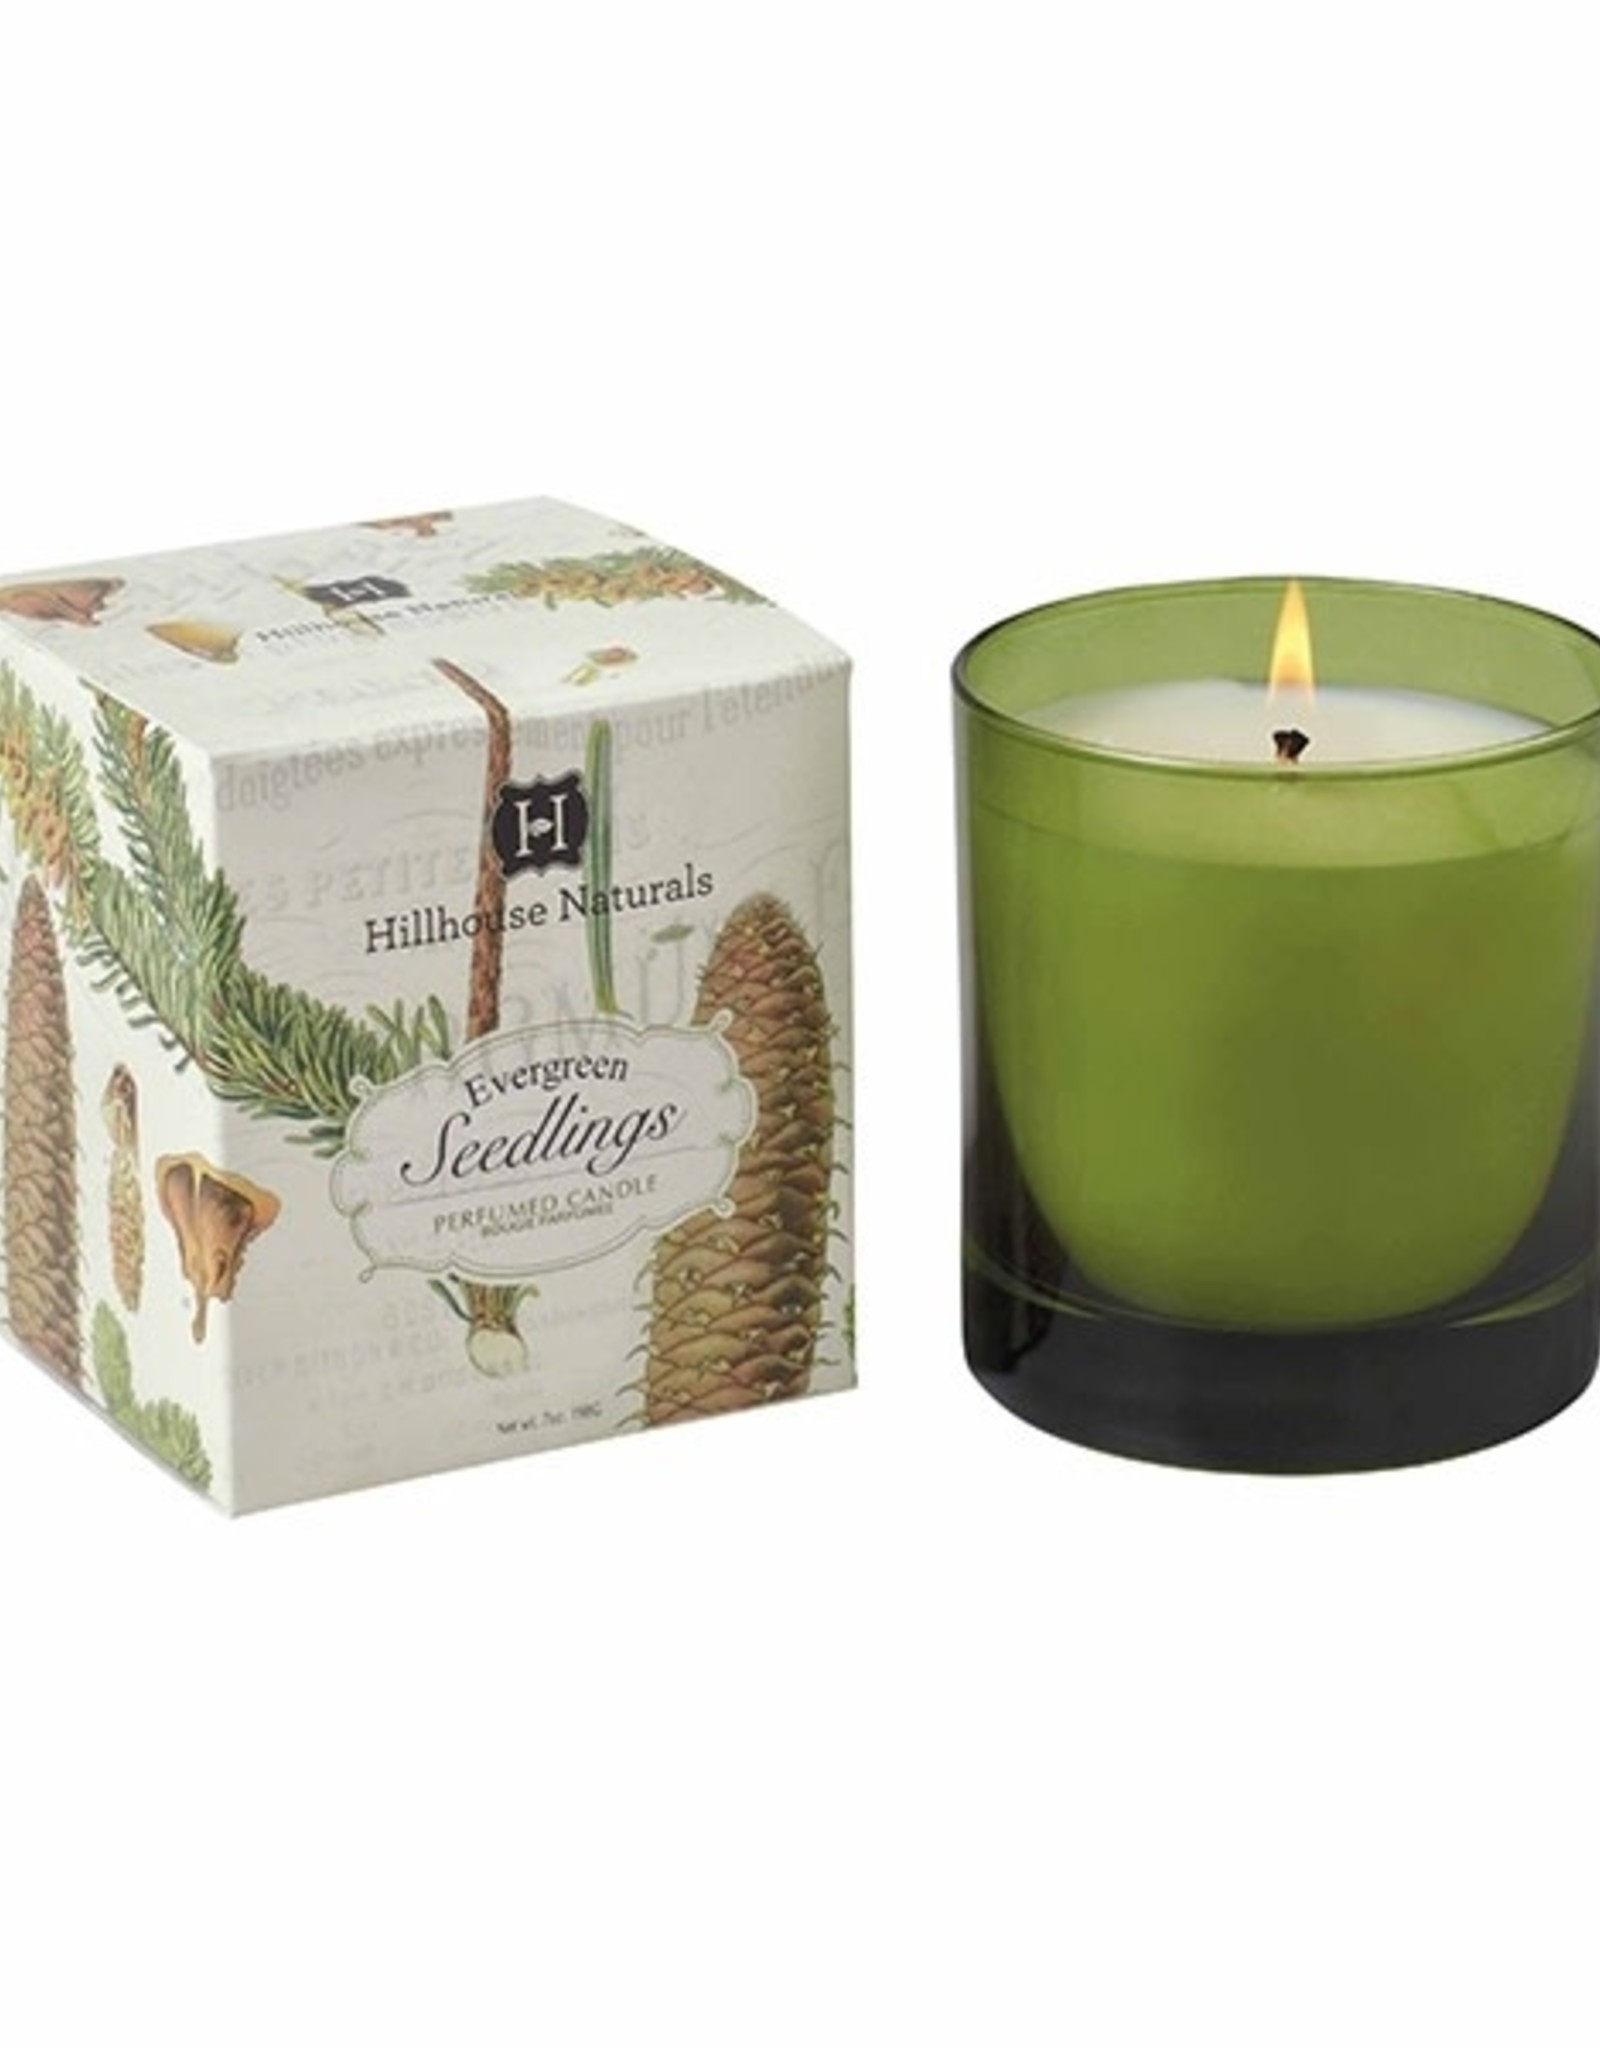 Hillhouse Naturals Evergreen Seedlings Candle Glass  Silver Lid 7oz